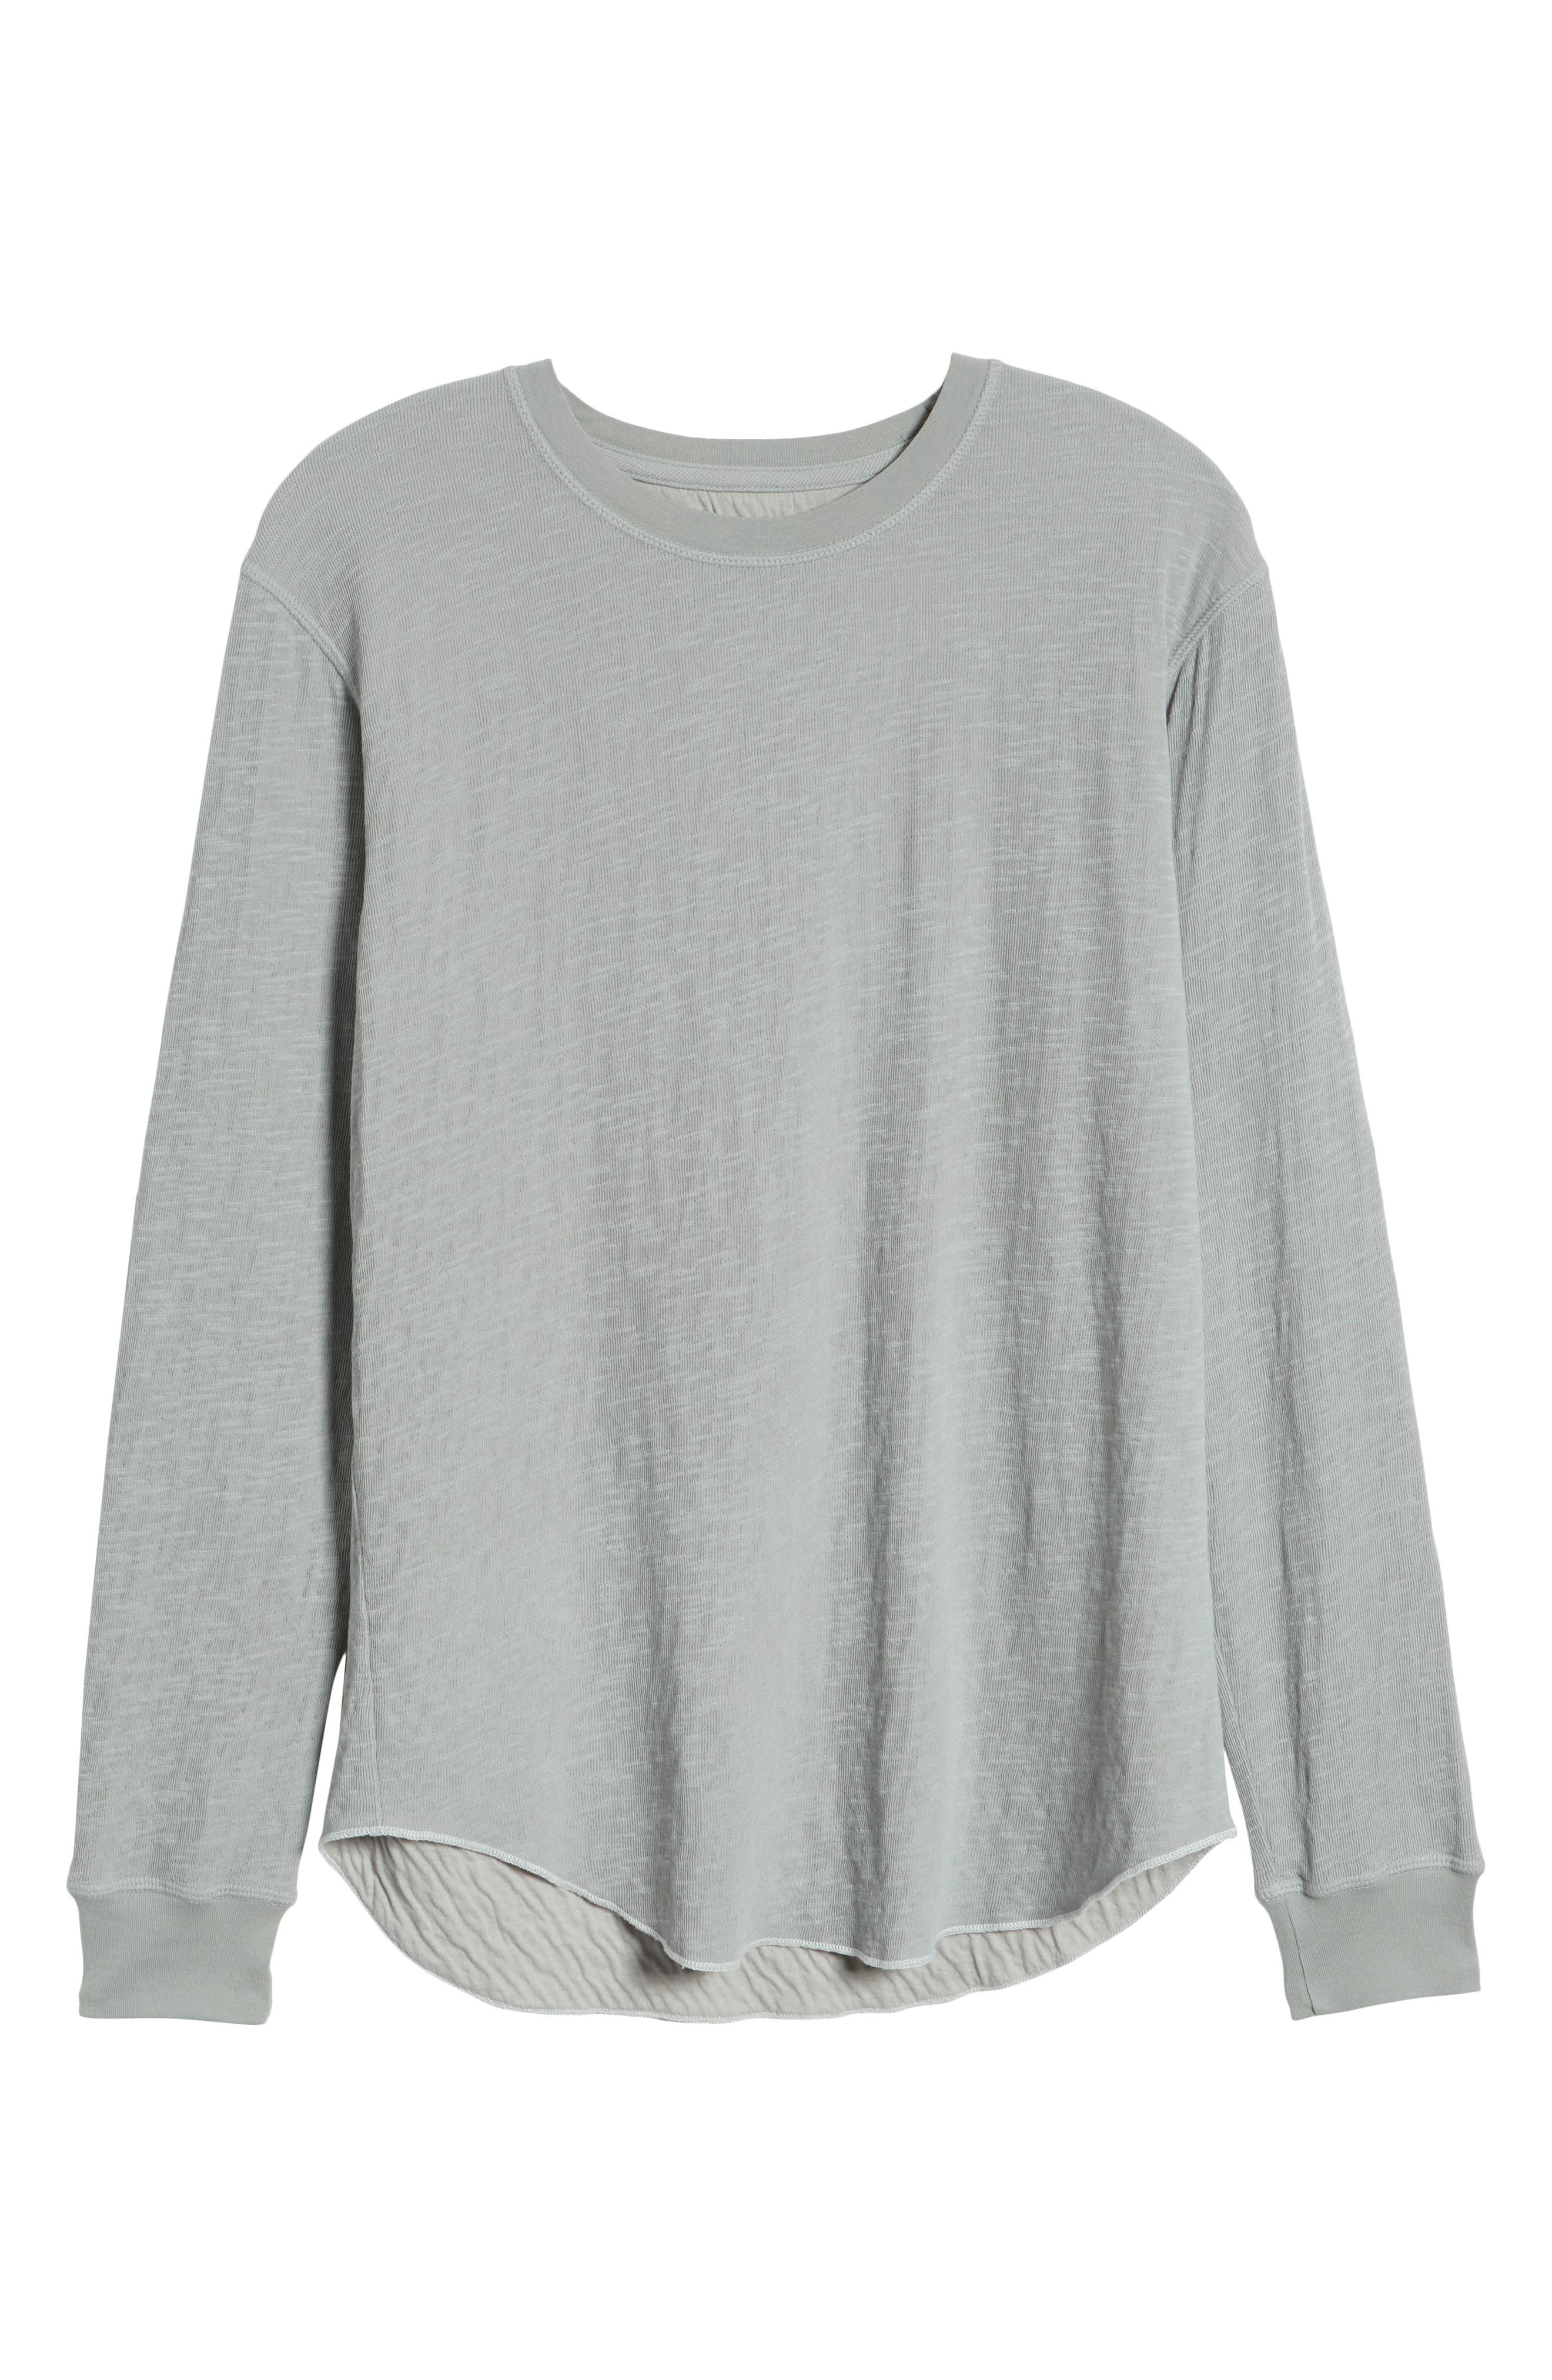 GOODLIFE,                             Double Layer Slim Crewneck T-Shirt,                             Alternate thumbnail 6, color,                             QUARRY